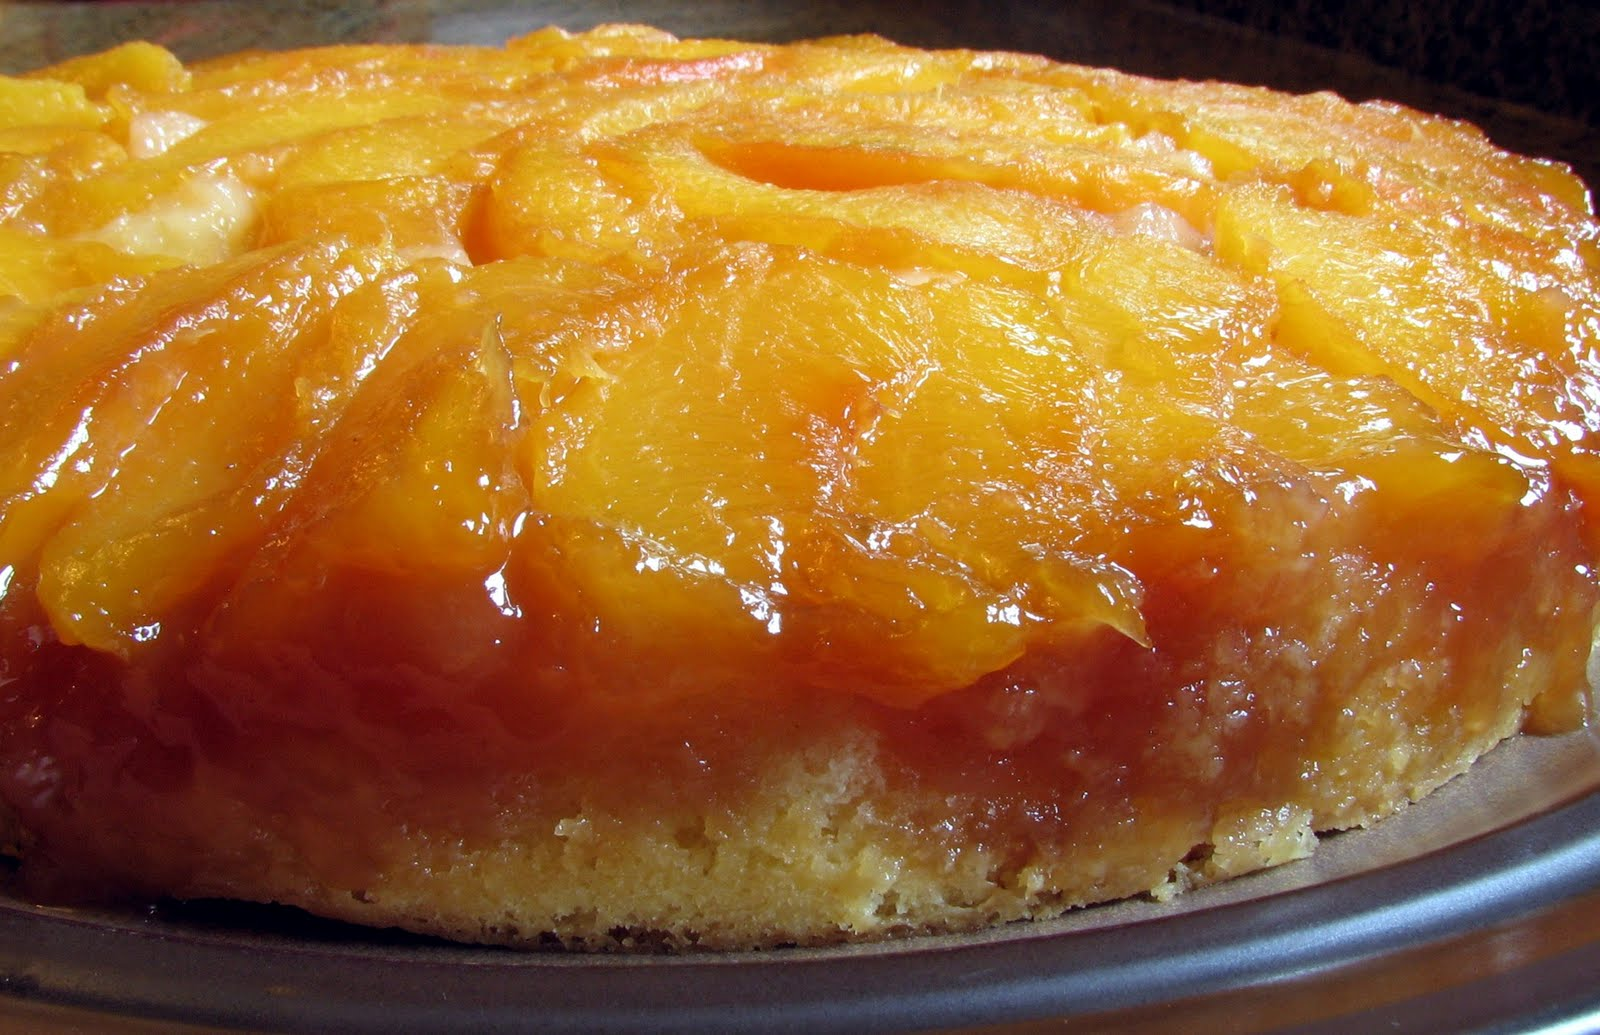 *: Peach Upside-Down Cake (Free Choice)